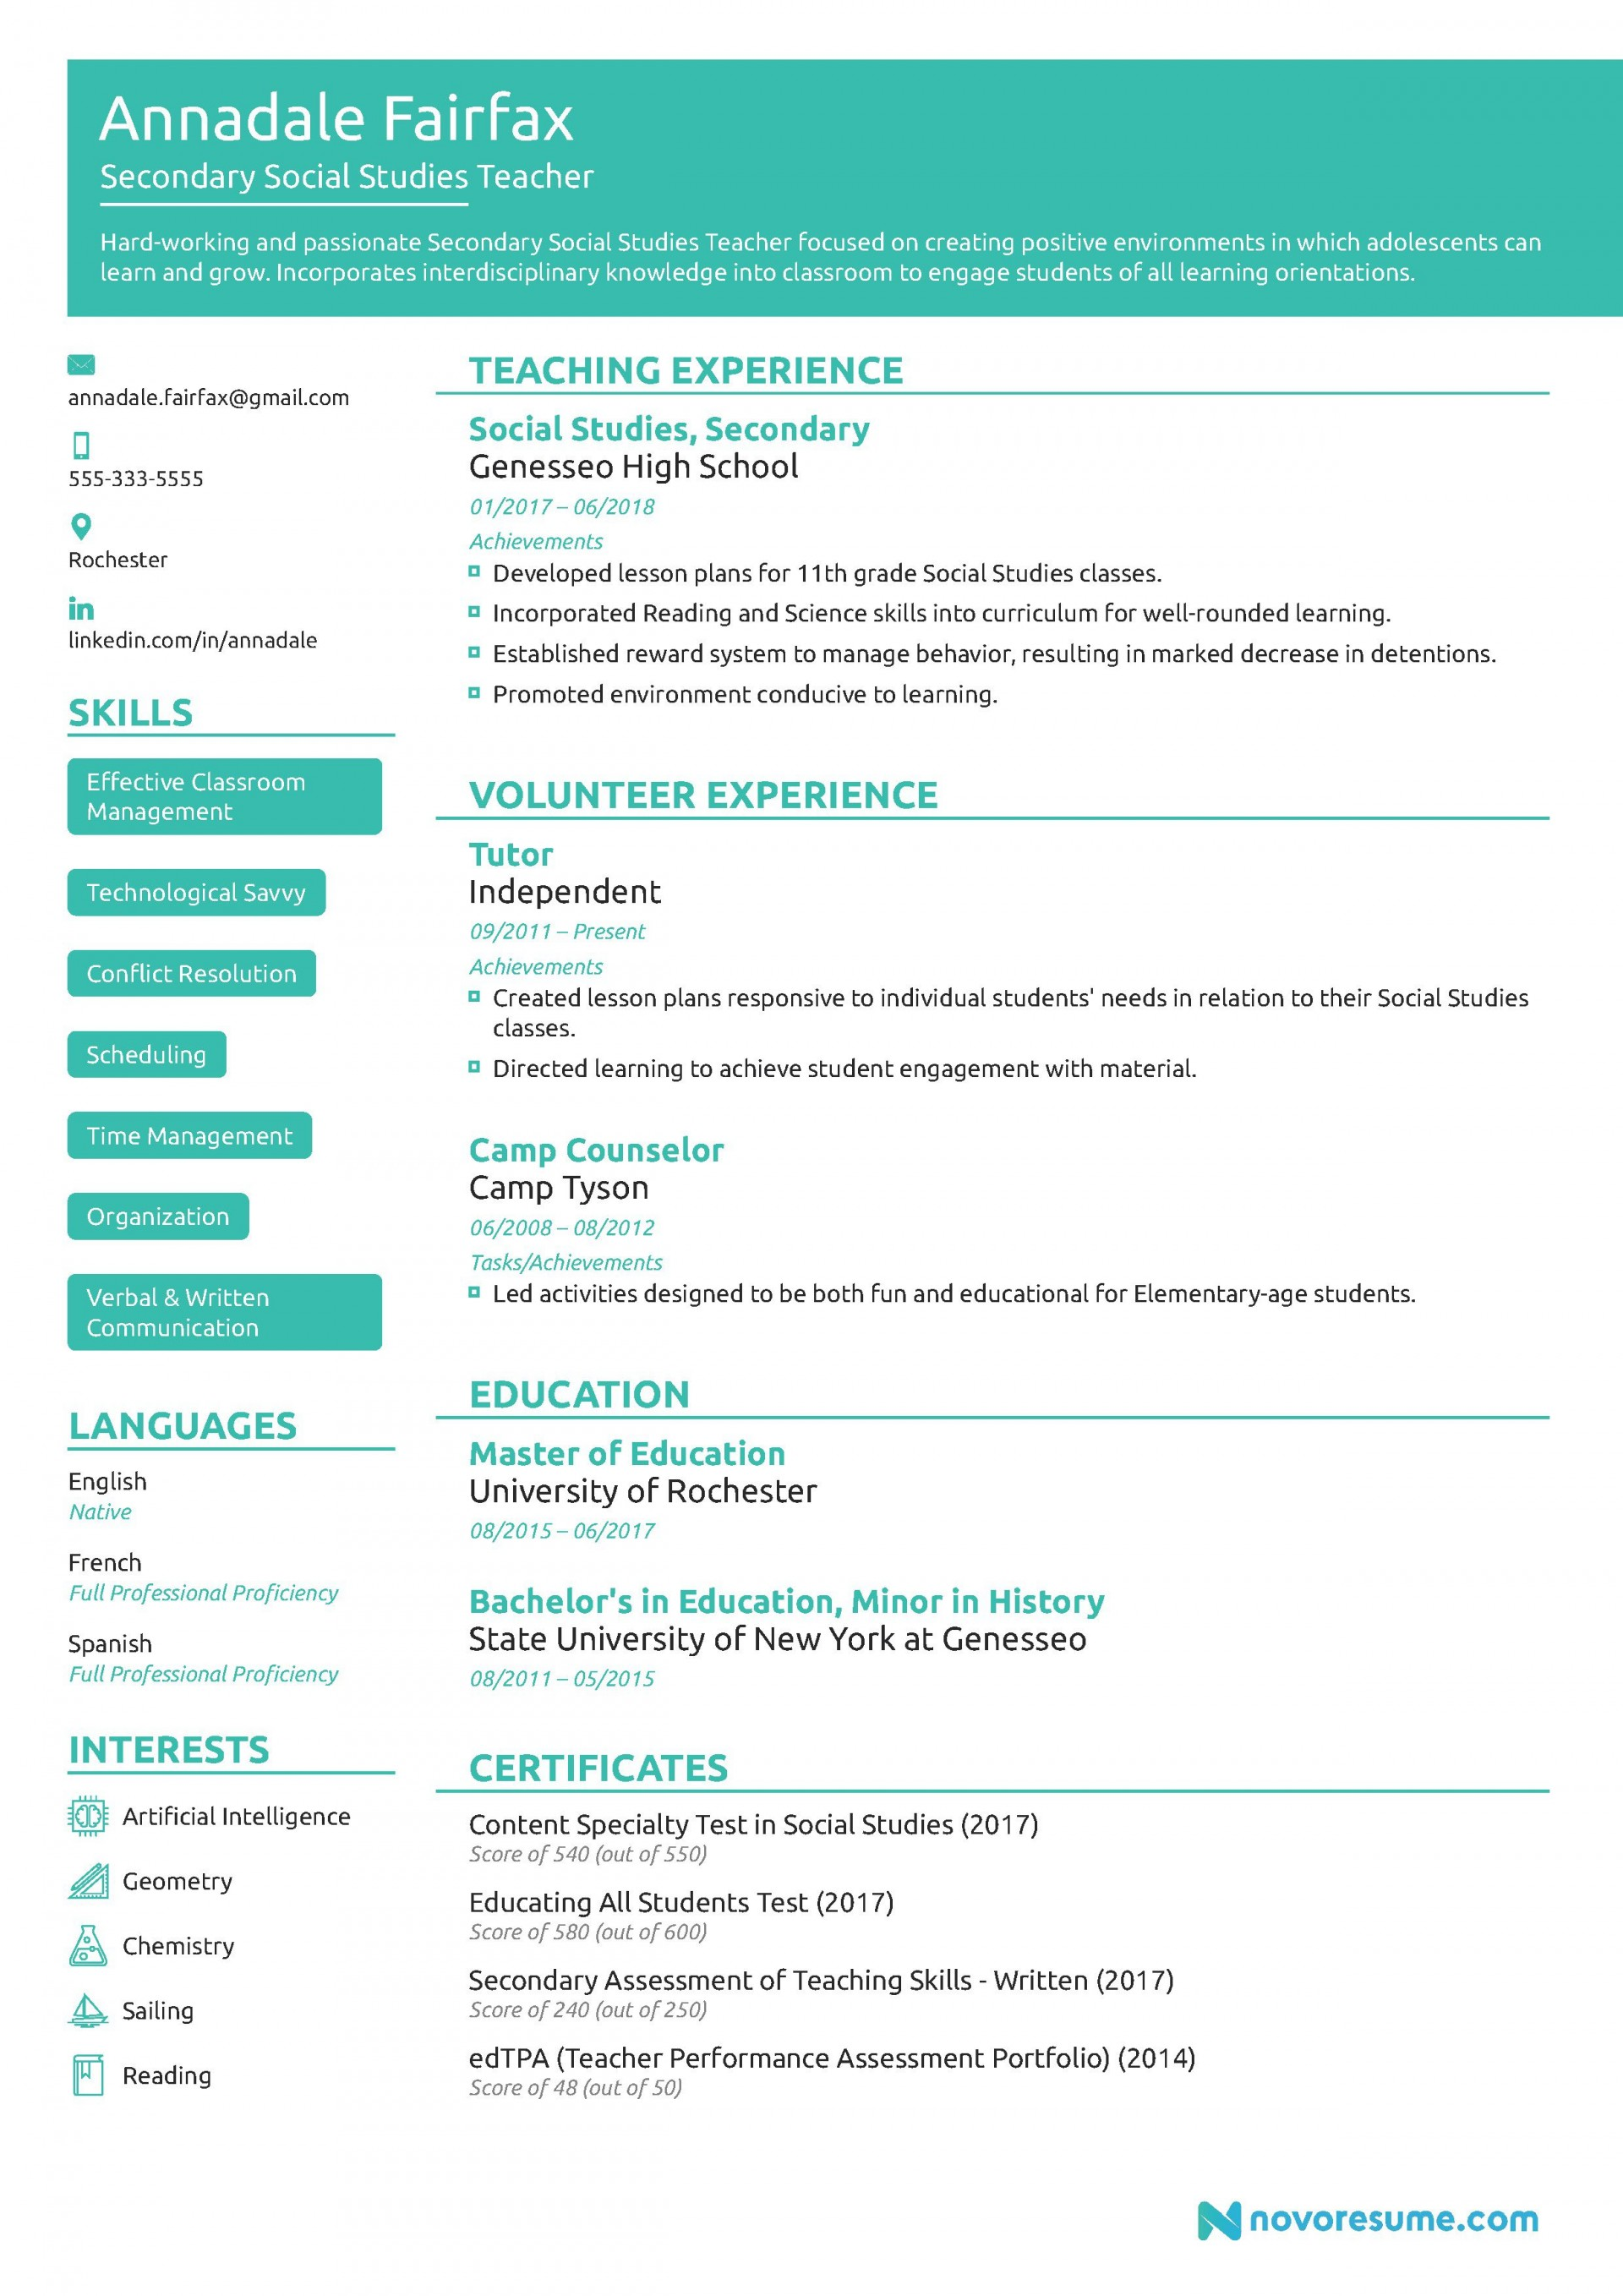 009 Wondrou Resume Template For Teacher Photo  Australia Microsoft Word Sample1920